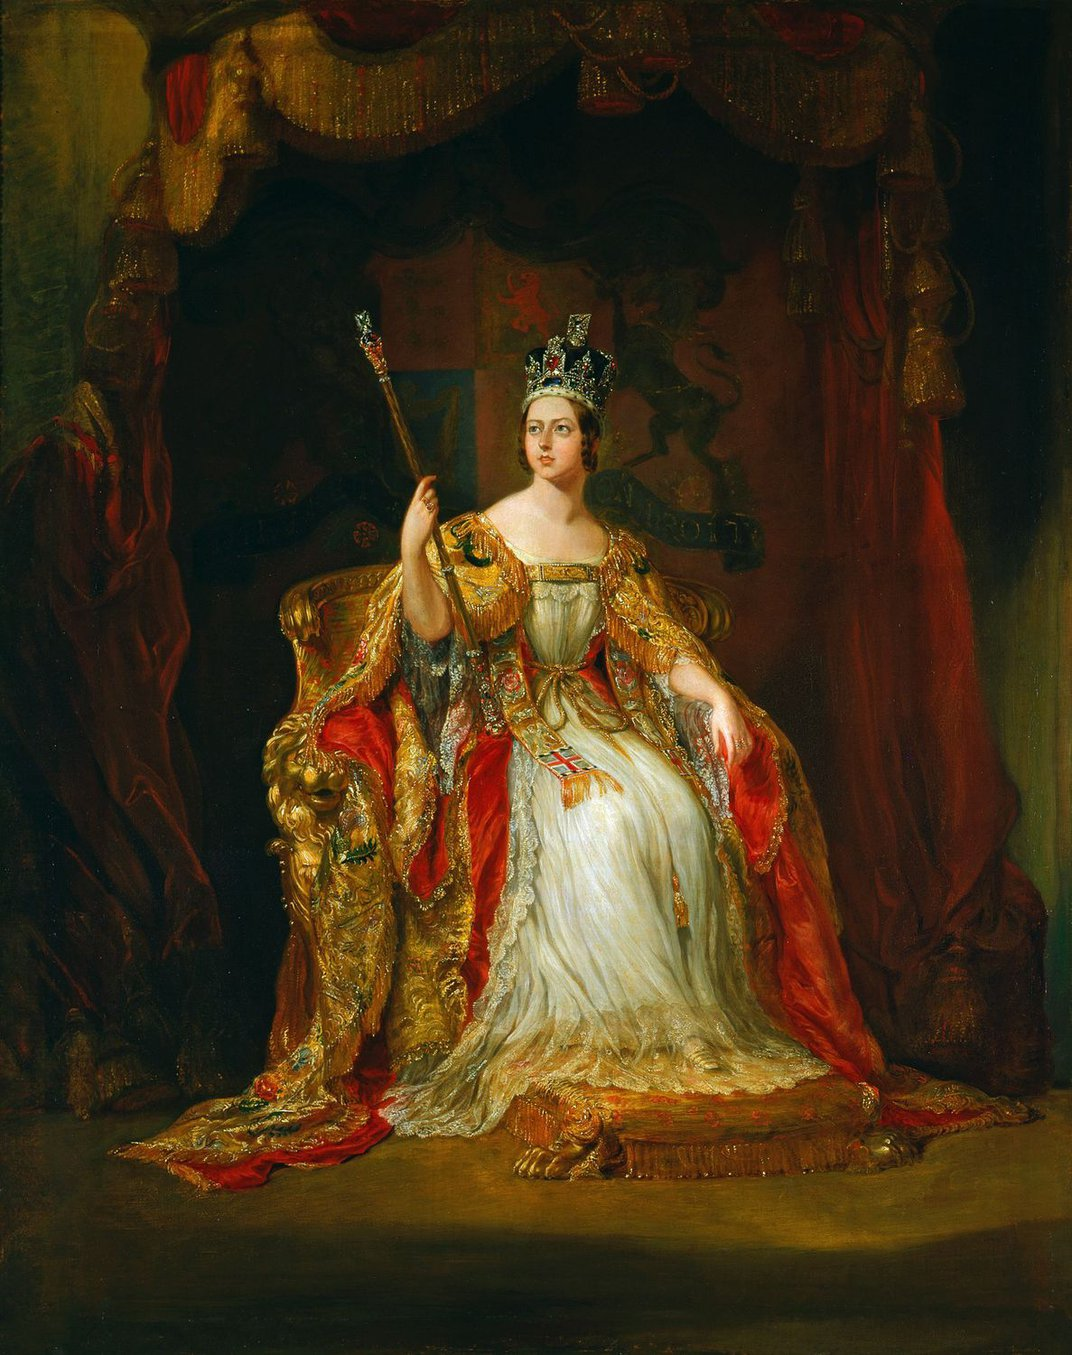 Americans Caught 'Victoria Fever' For The British Queen's 1838 Coronation